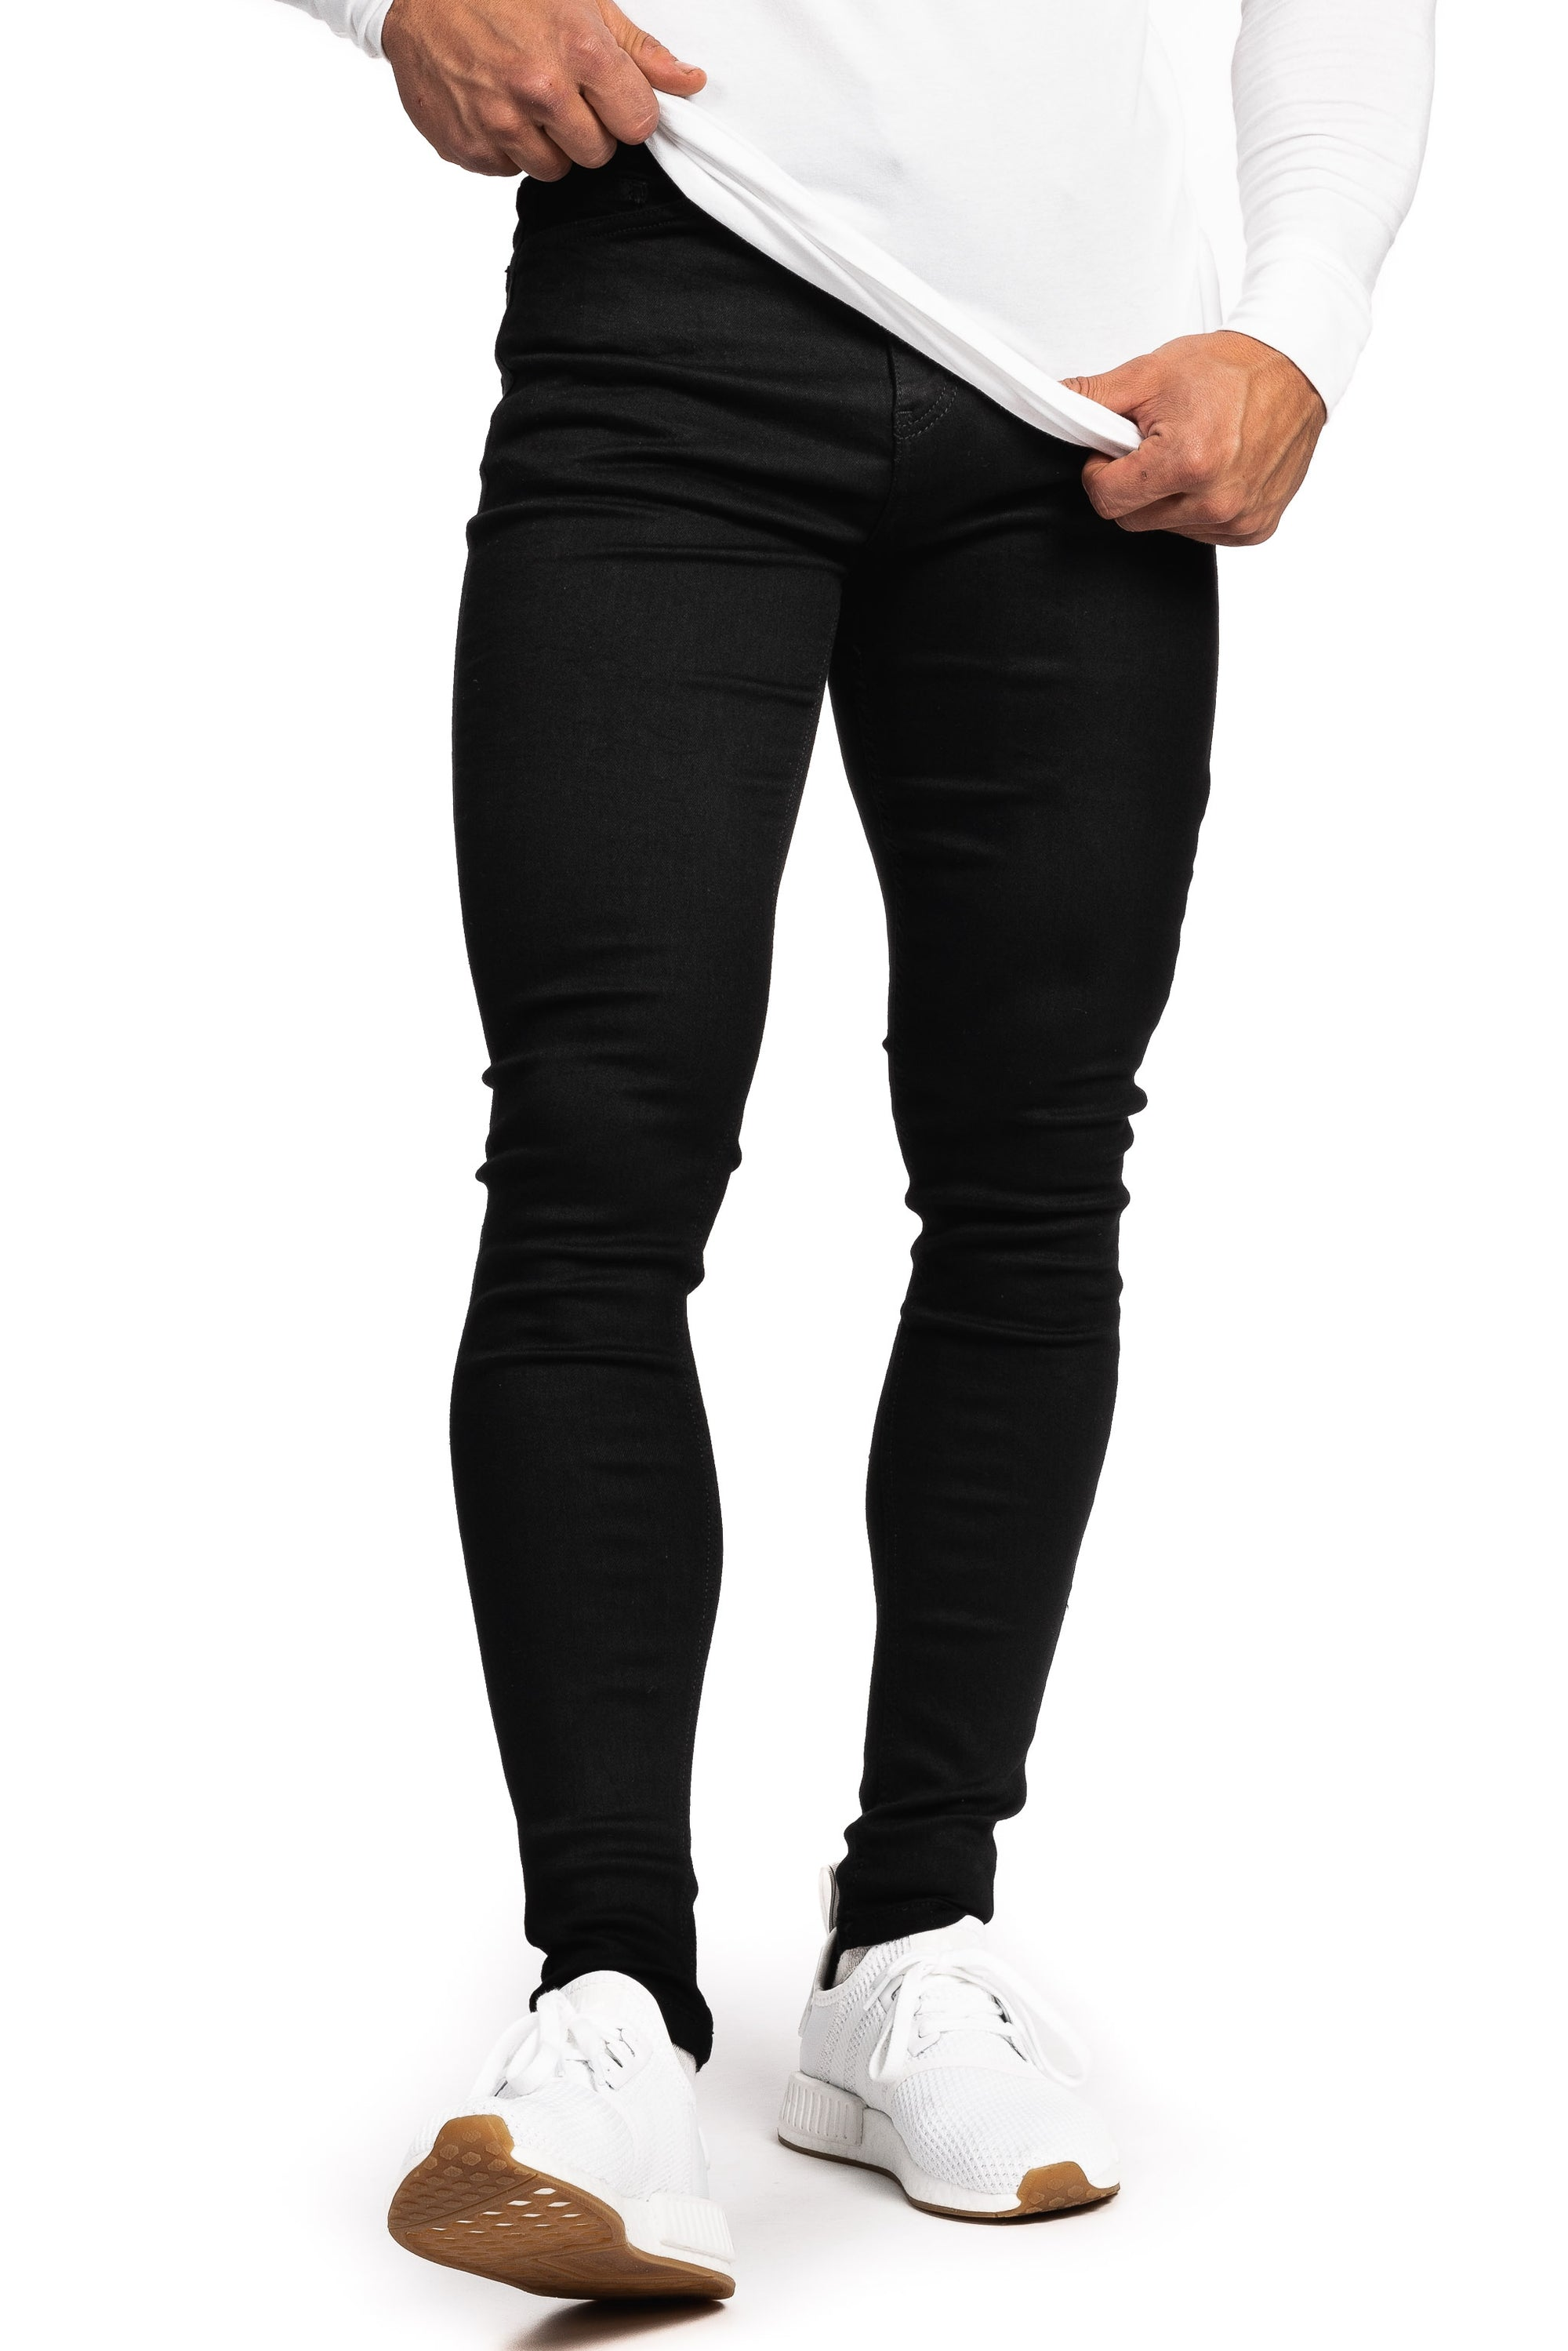 Mens Regular Fitjeans - Black - Fitjeans Norge